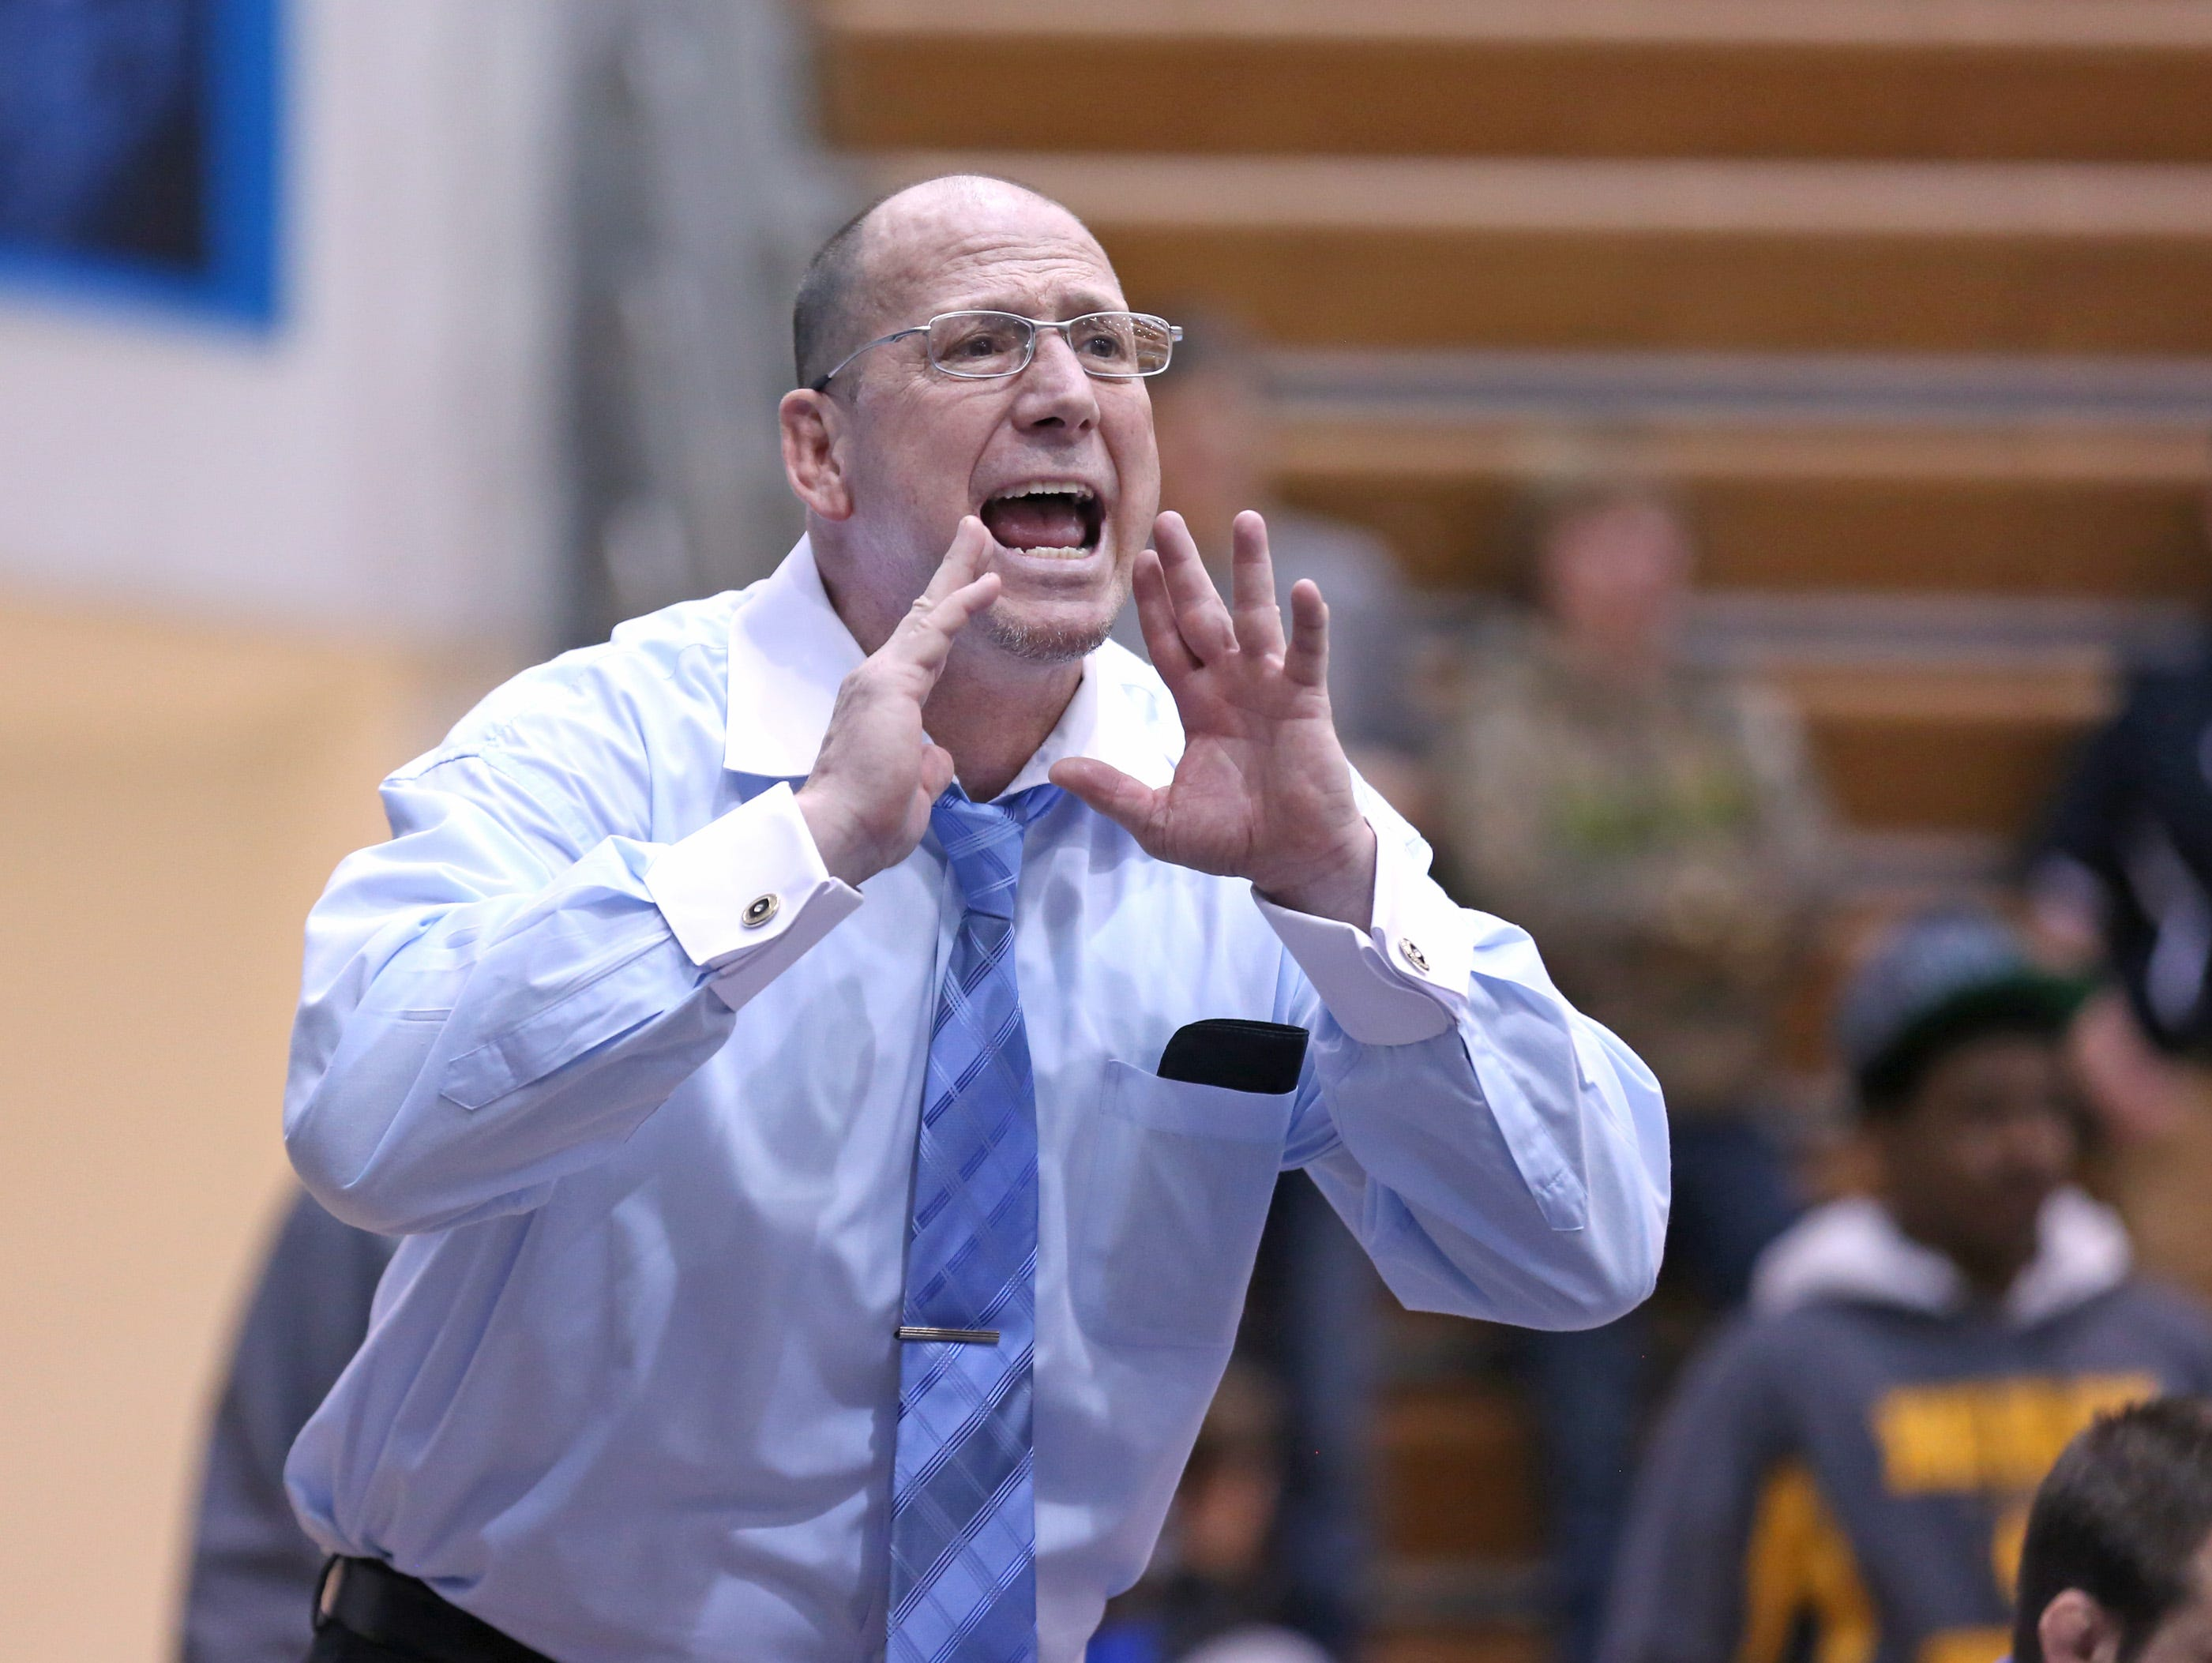 Perry Meridian head coach Jim Tonte calls out to a competitor during the wrestling regional finals at Perry Meridian High School Saturday February 8, 2014.